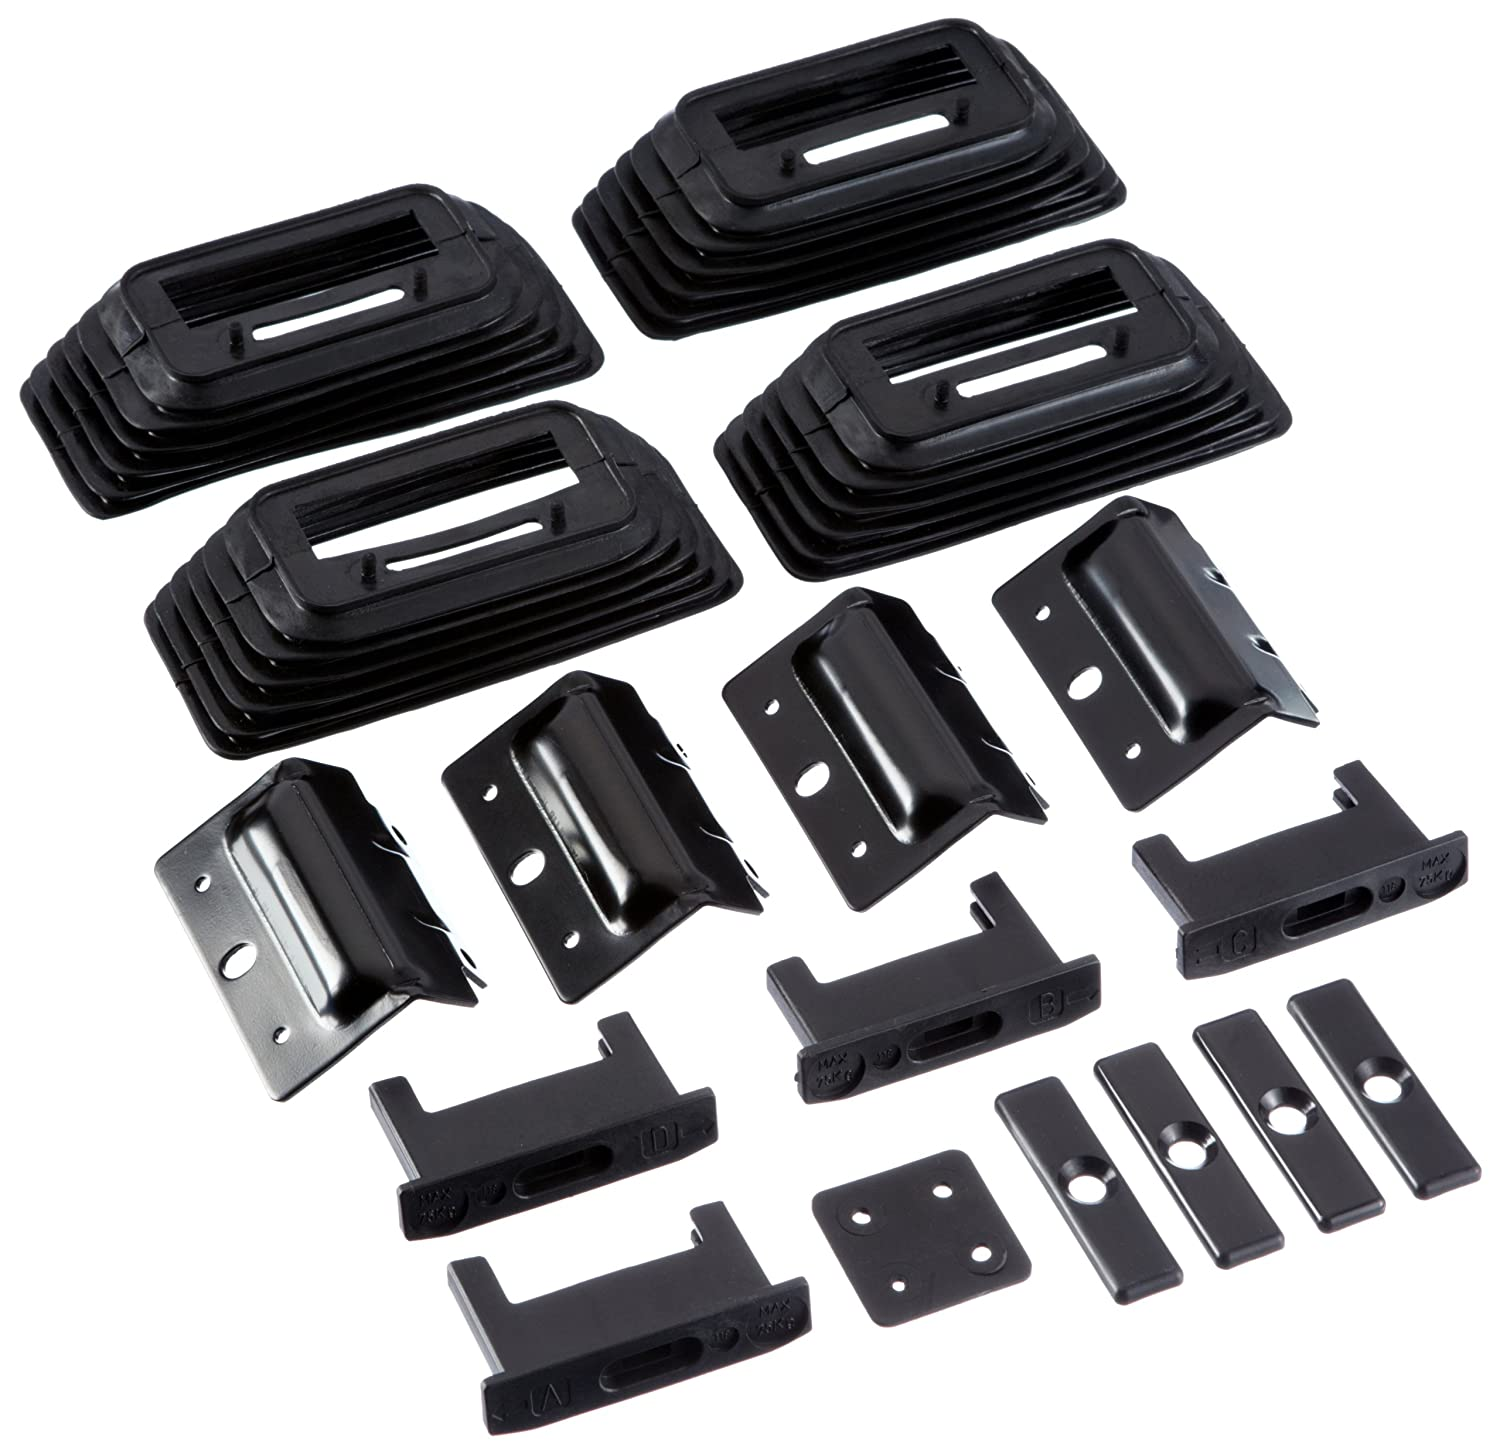 Green Valley 156118 Montage Kit for Original Roof Racks